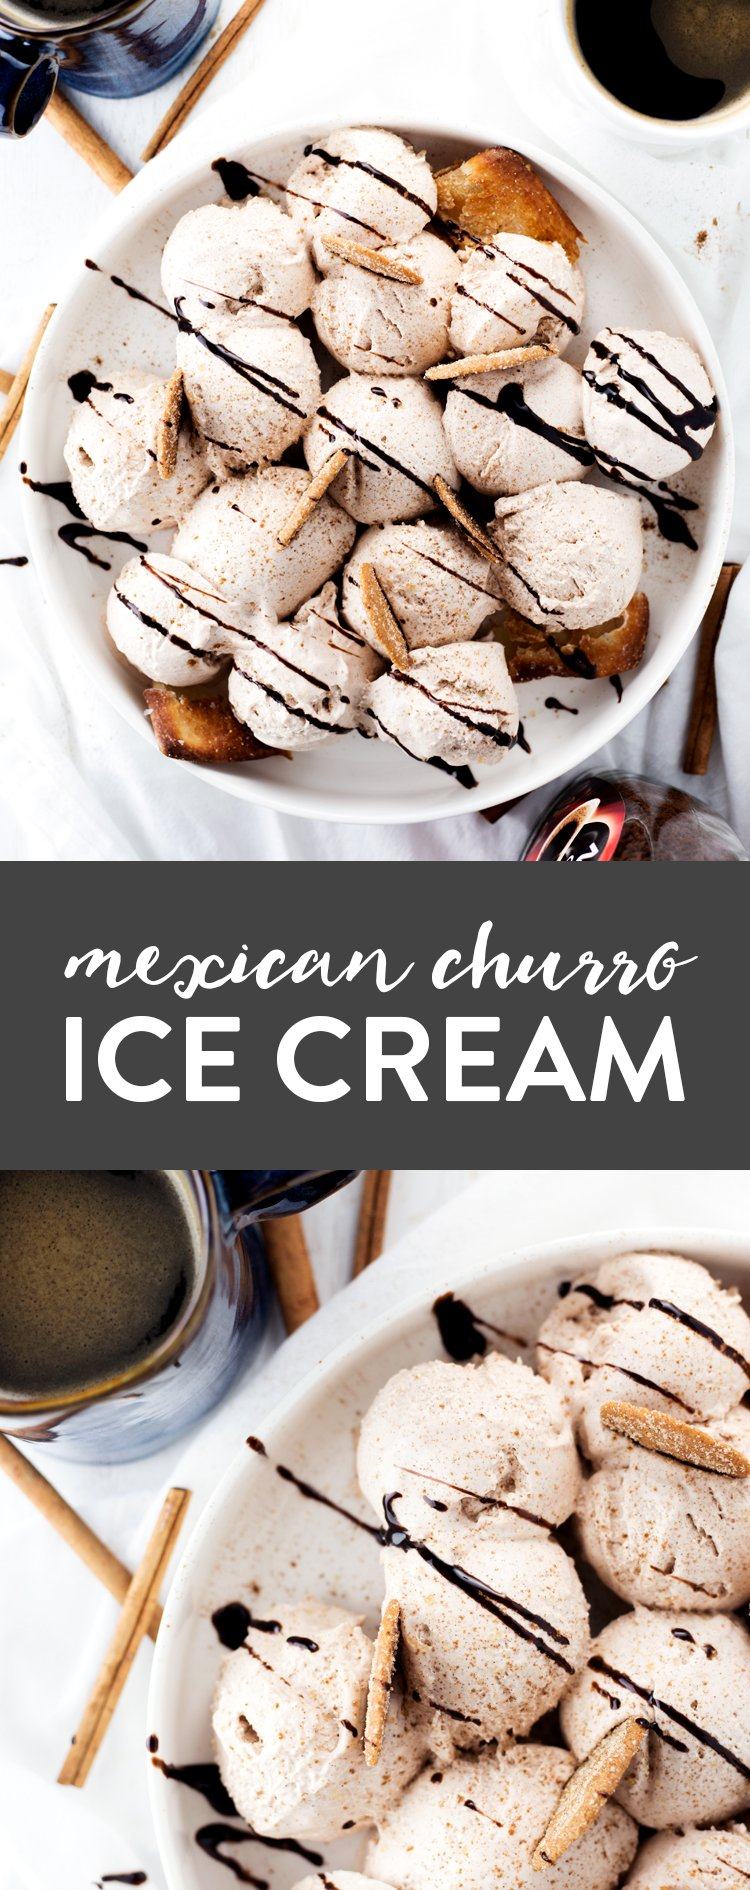 Cool down with this simple and delicious NO CHURN Mexican Churro Ice Cream! Preps in minutes, just pop in the freezer and get ready for dessert!   asimplepantry.com